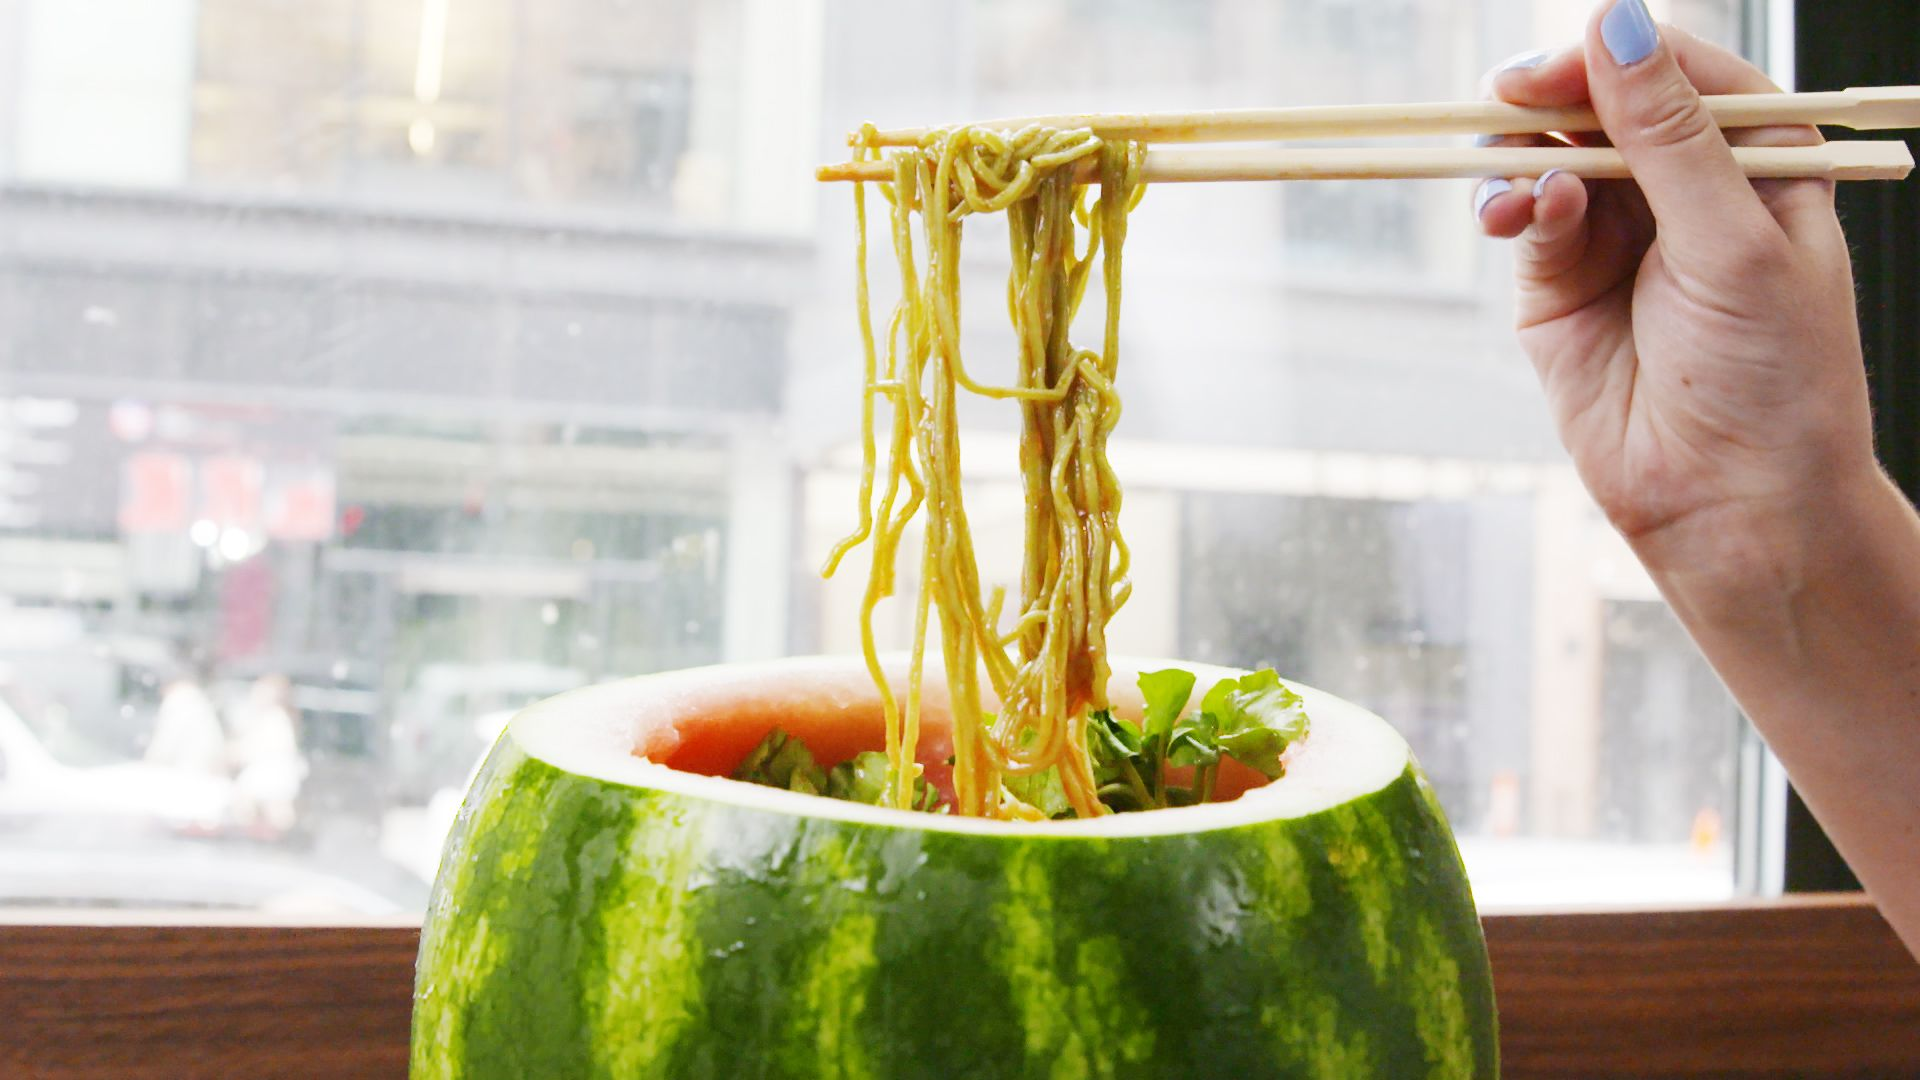 This Watermelon Bowl Is Stuffed To The Brim With...Noodles!